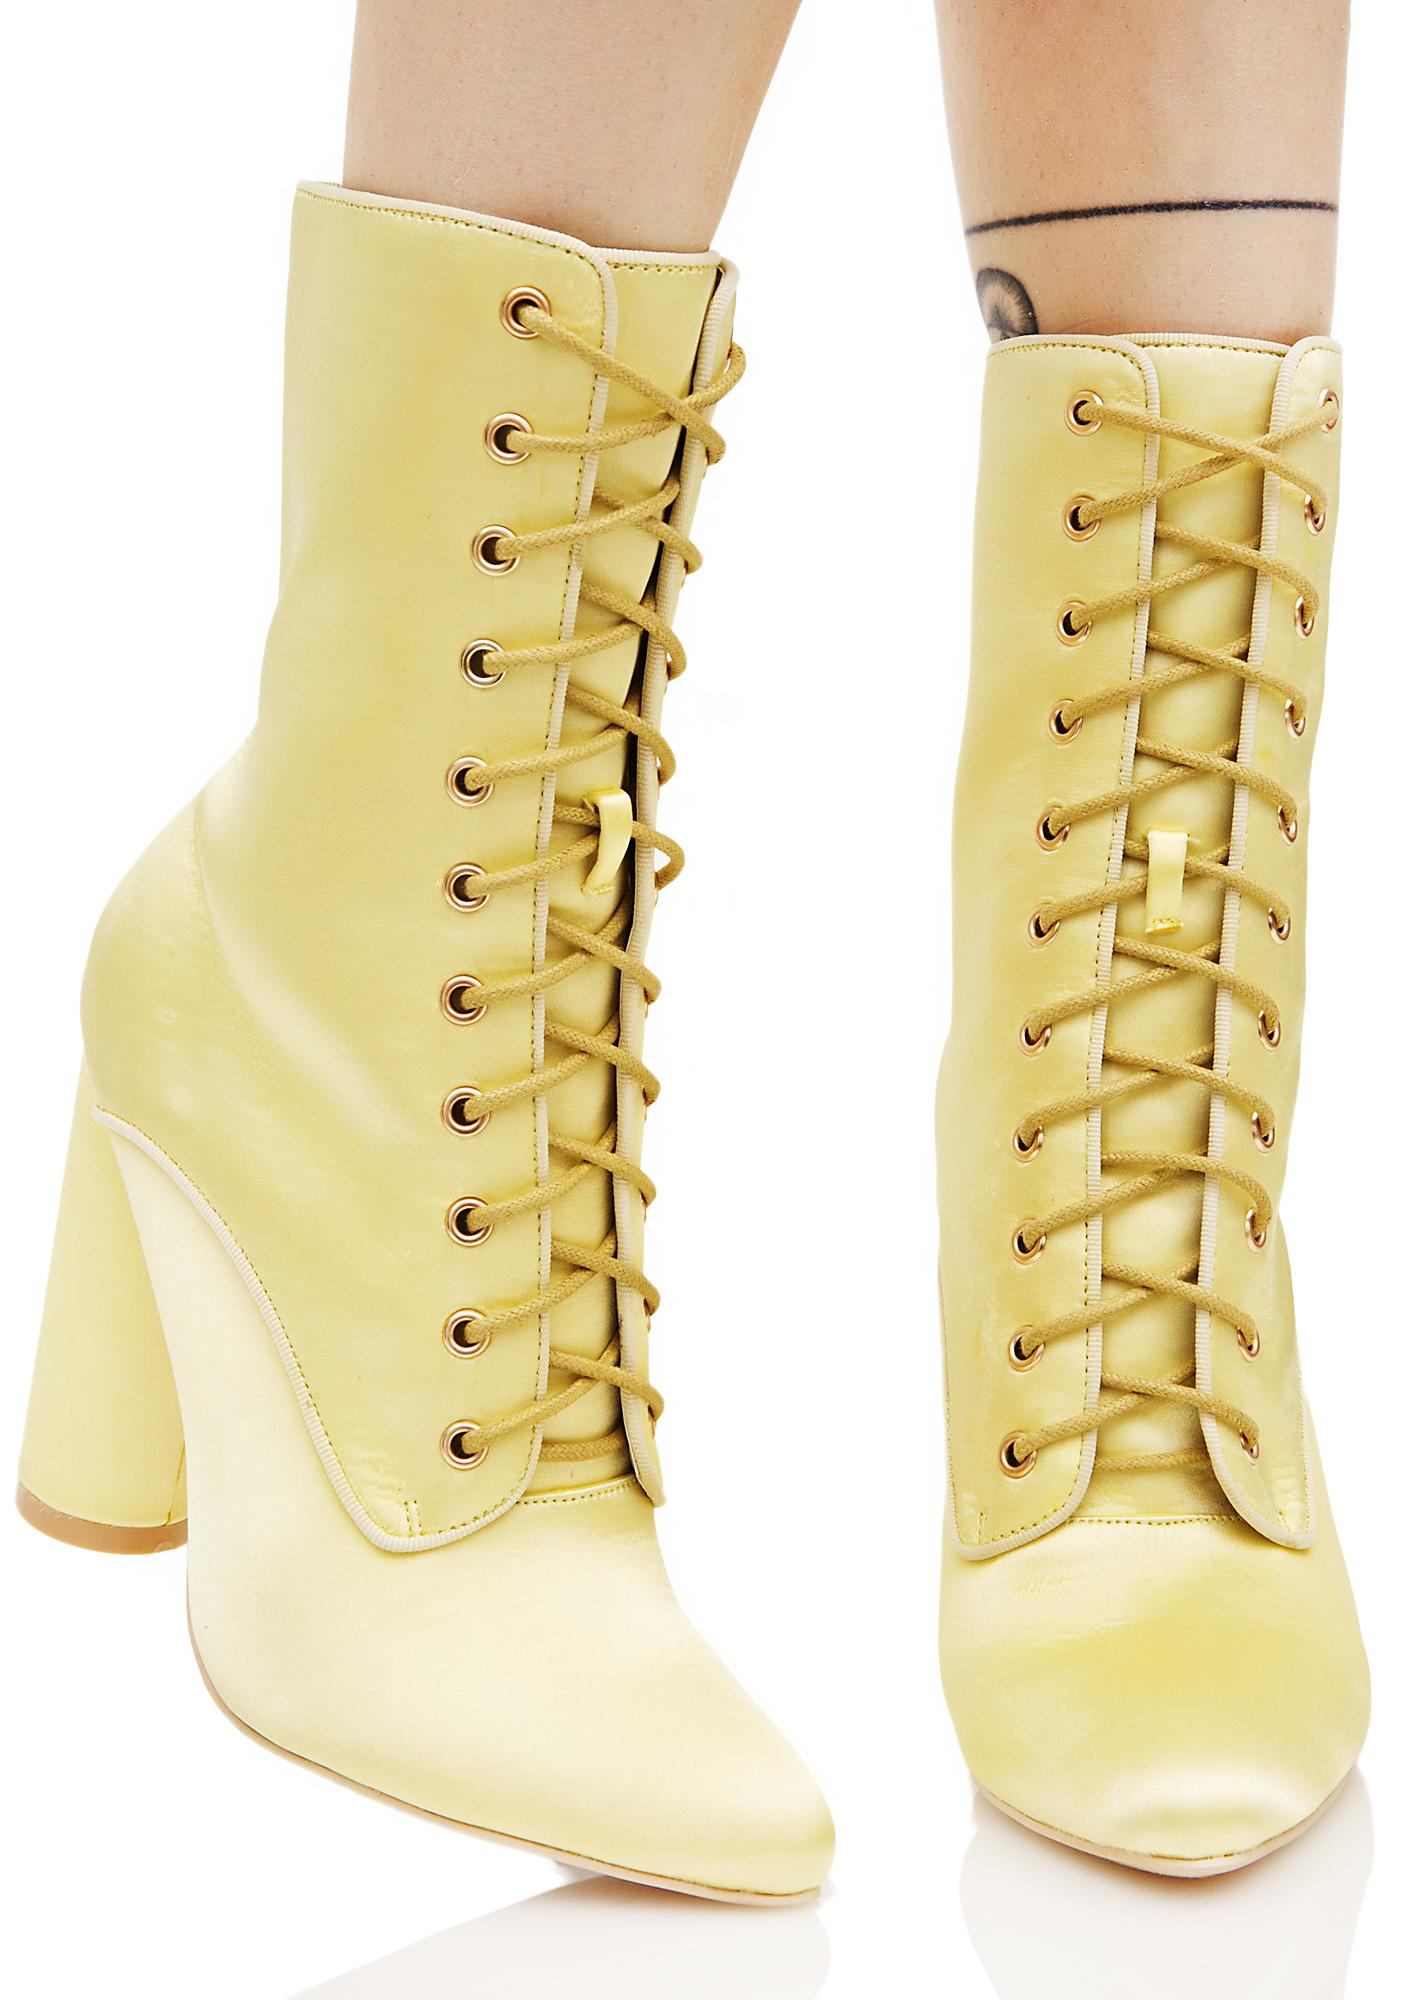 Sunny So Posh Lace-Up Boots